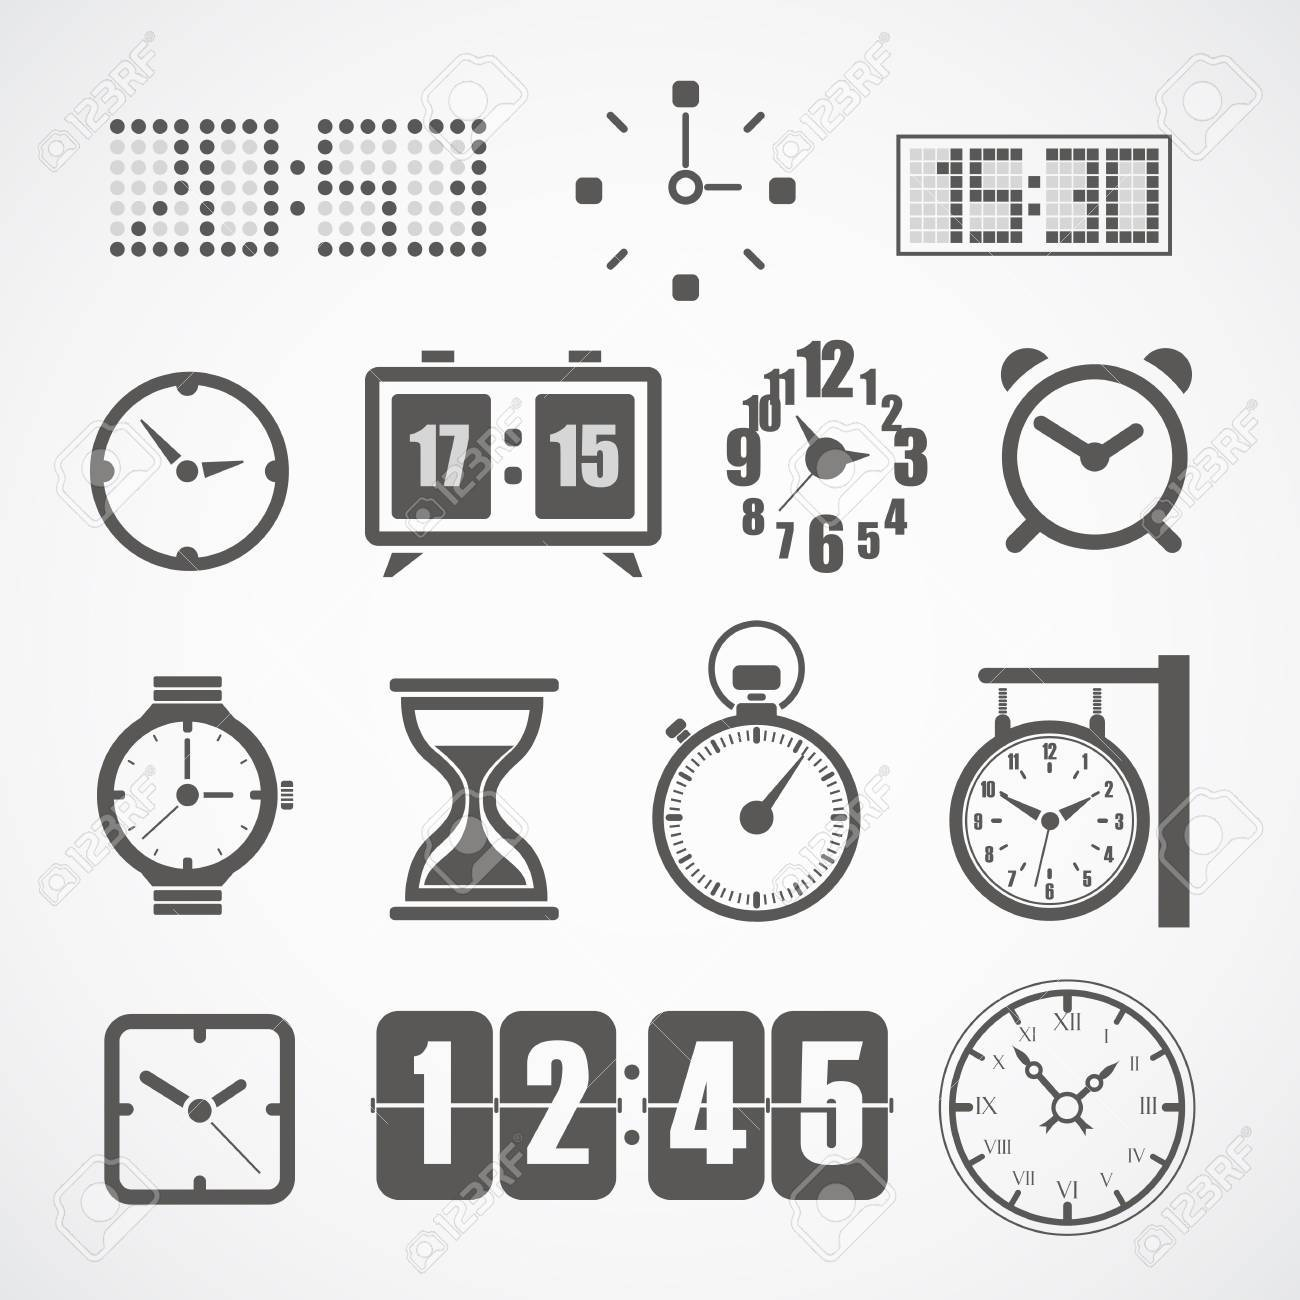 Different styles of clock illustration collection Stock Vector - 18089688